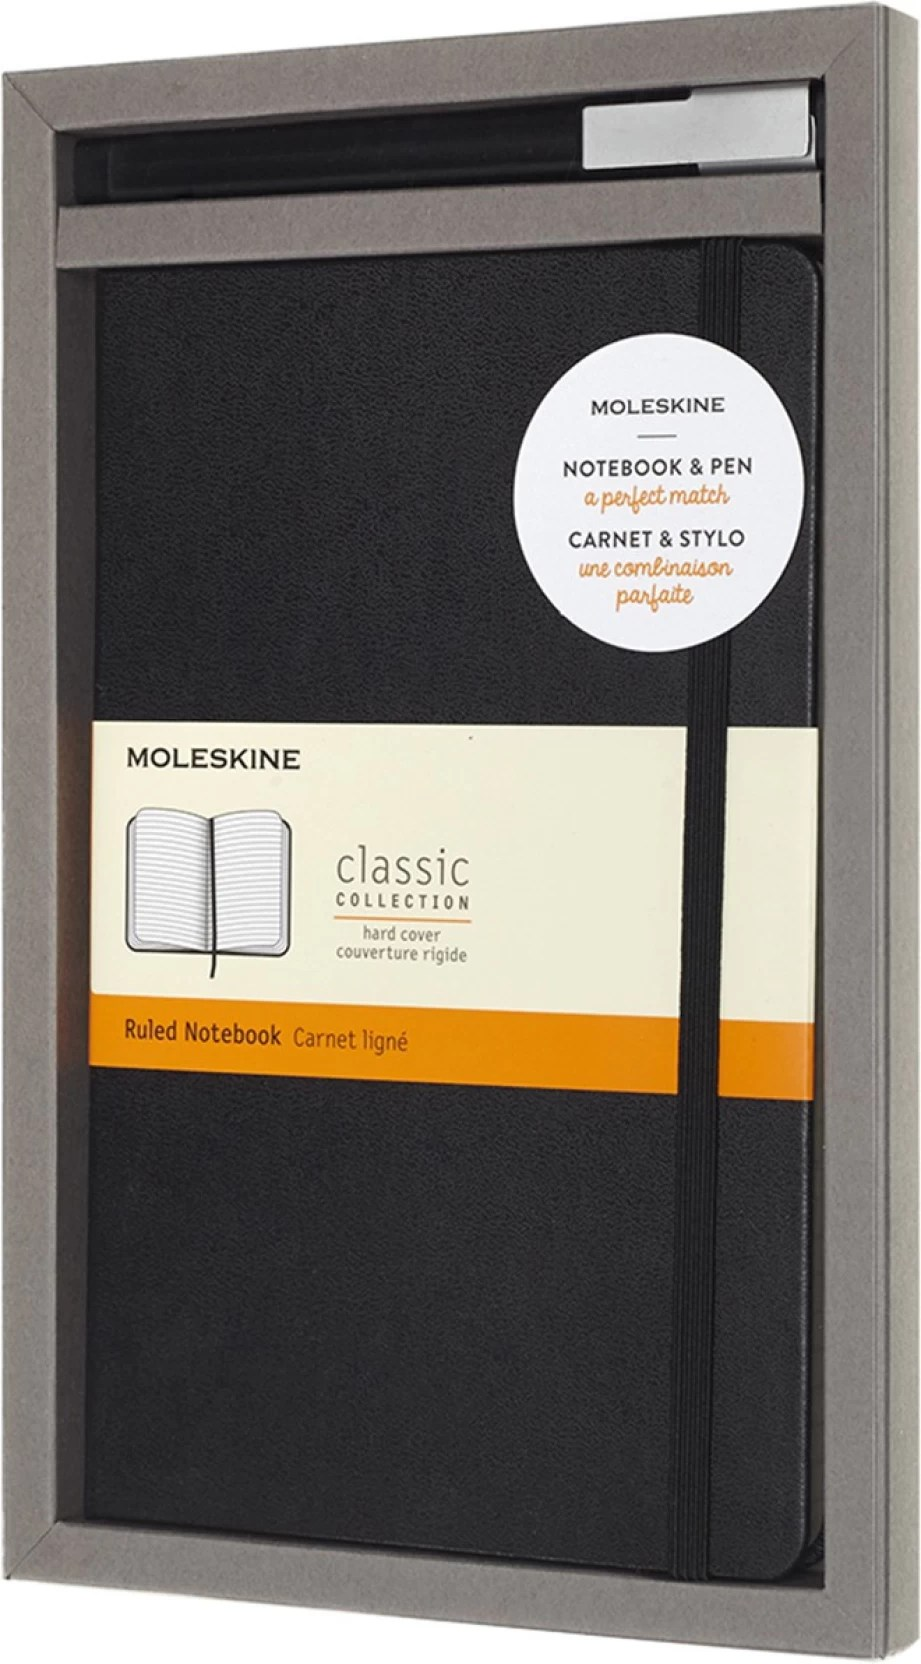 Moleskine A5 Moleskine A5 Notebook Price In India Buy Moleskine A5 Notebook